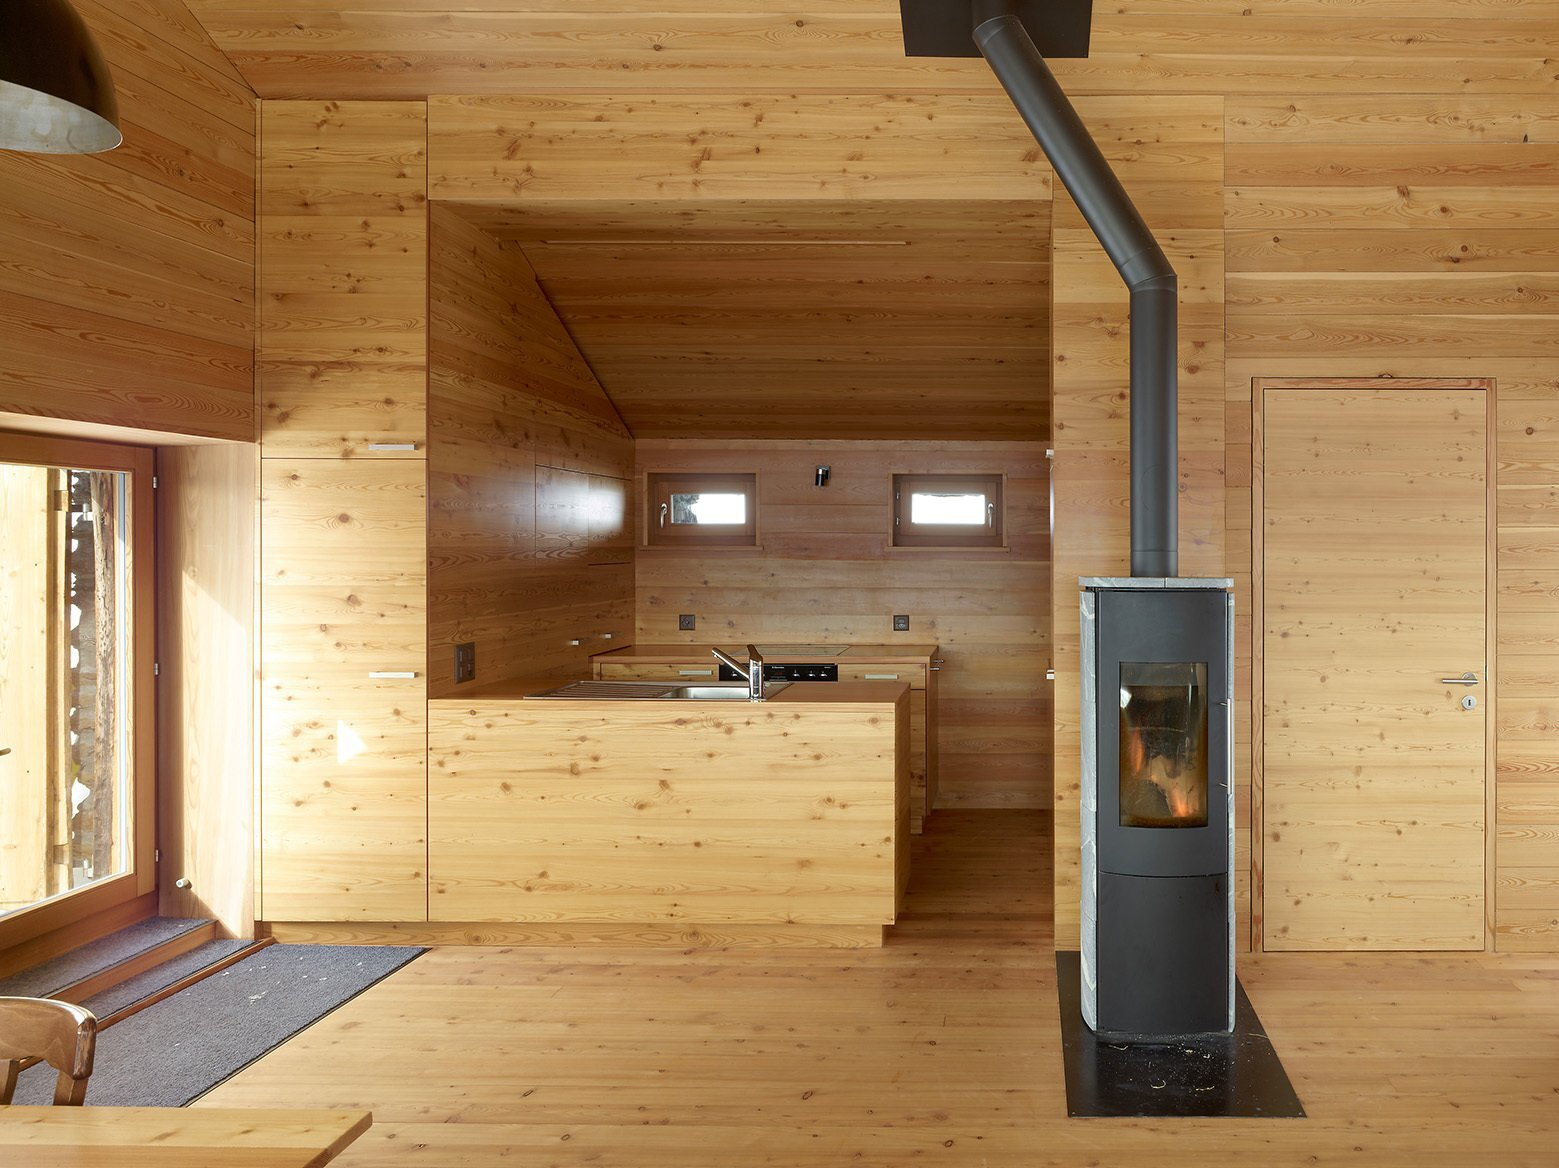 Gaudin House Barn Transformed Into A Small Cabin In The